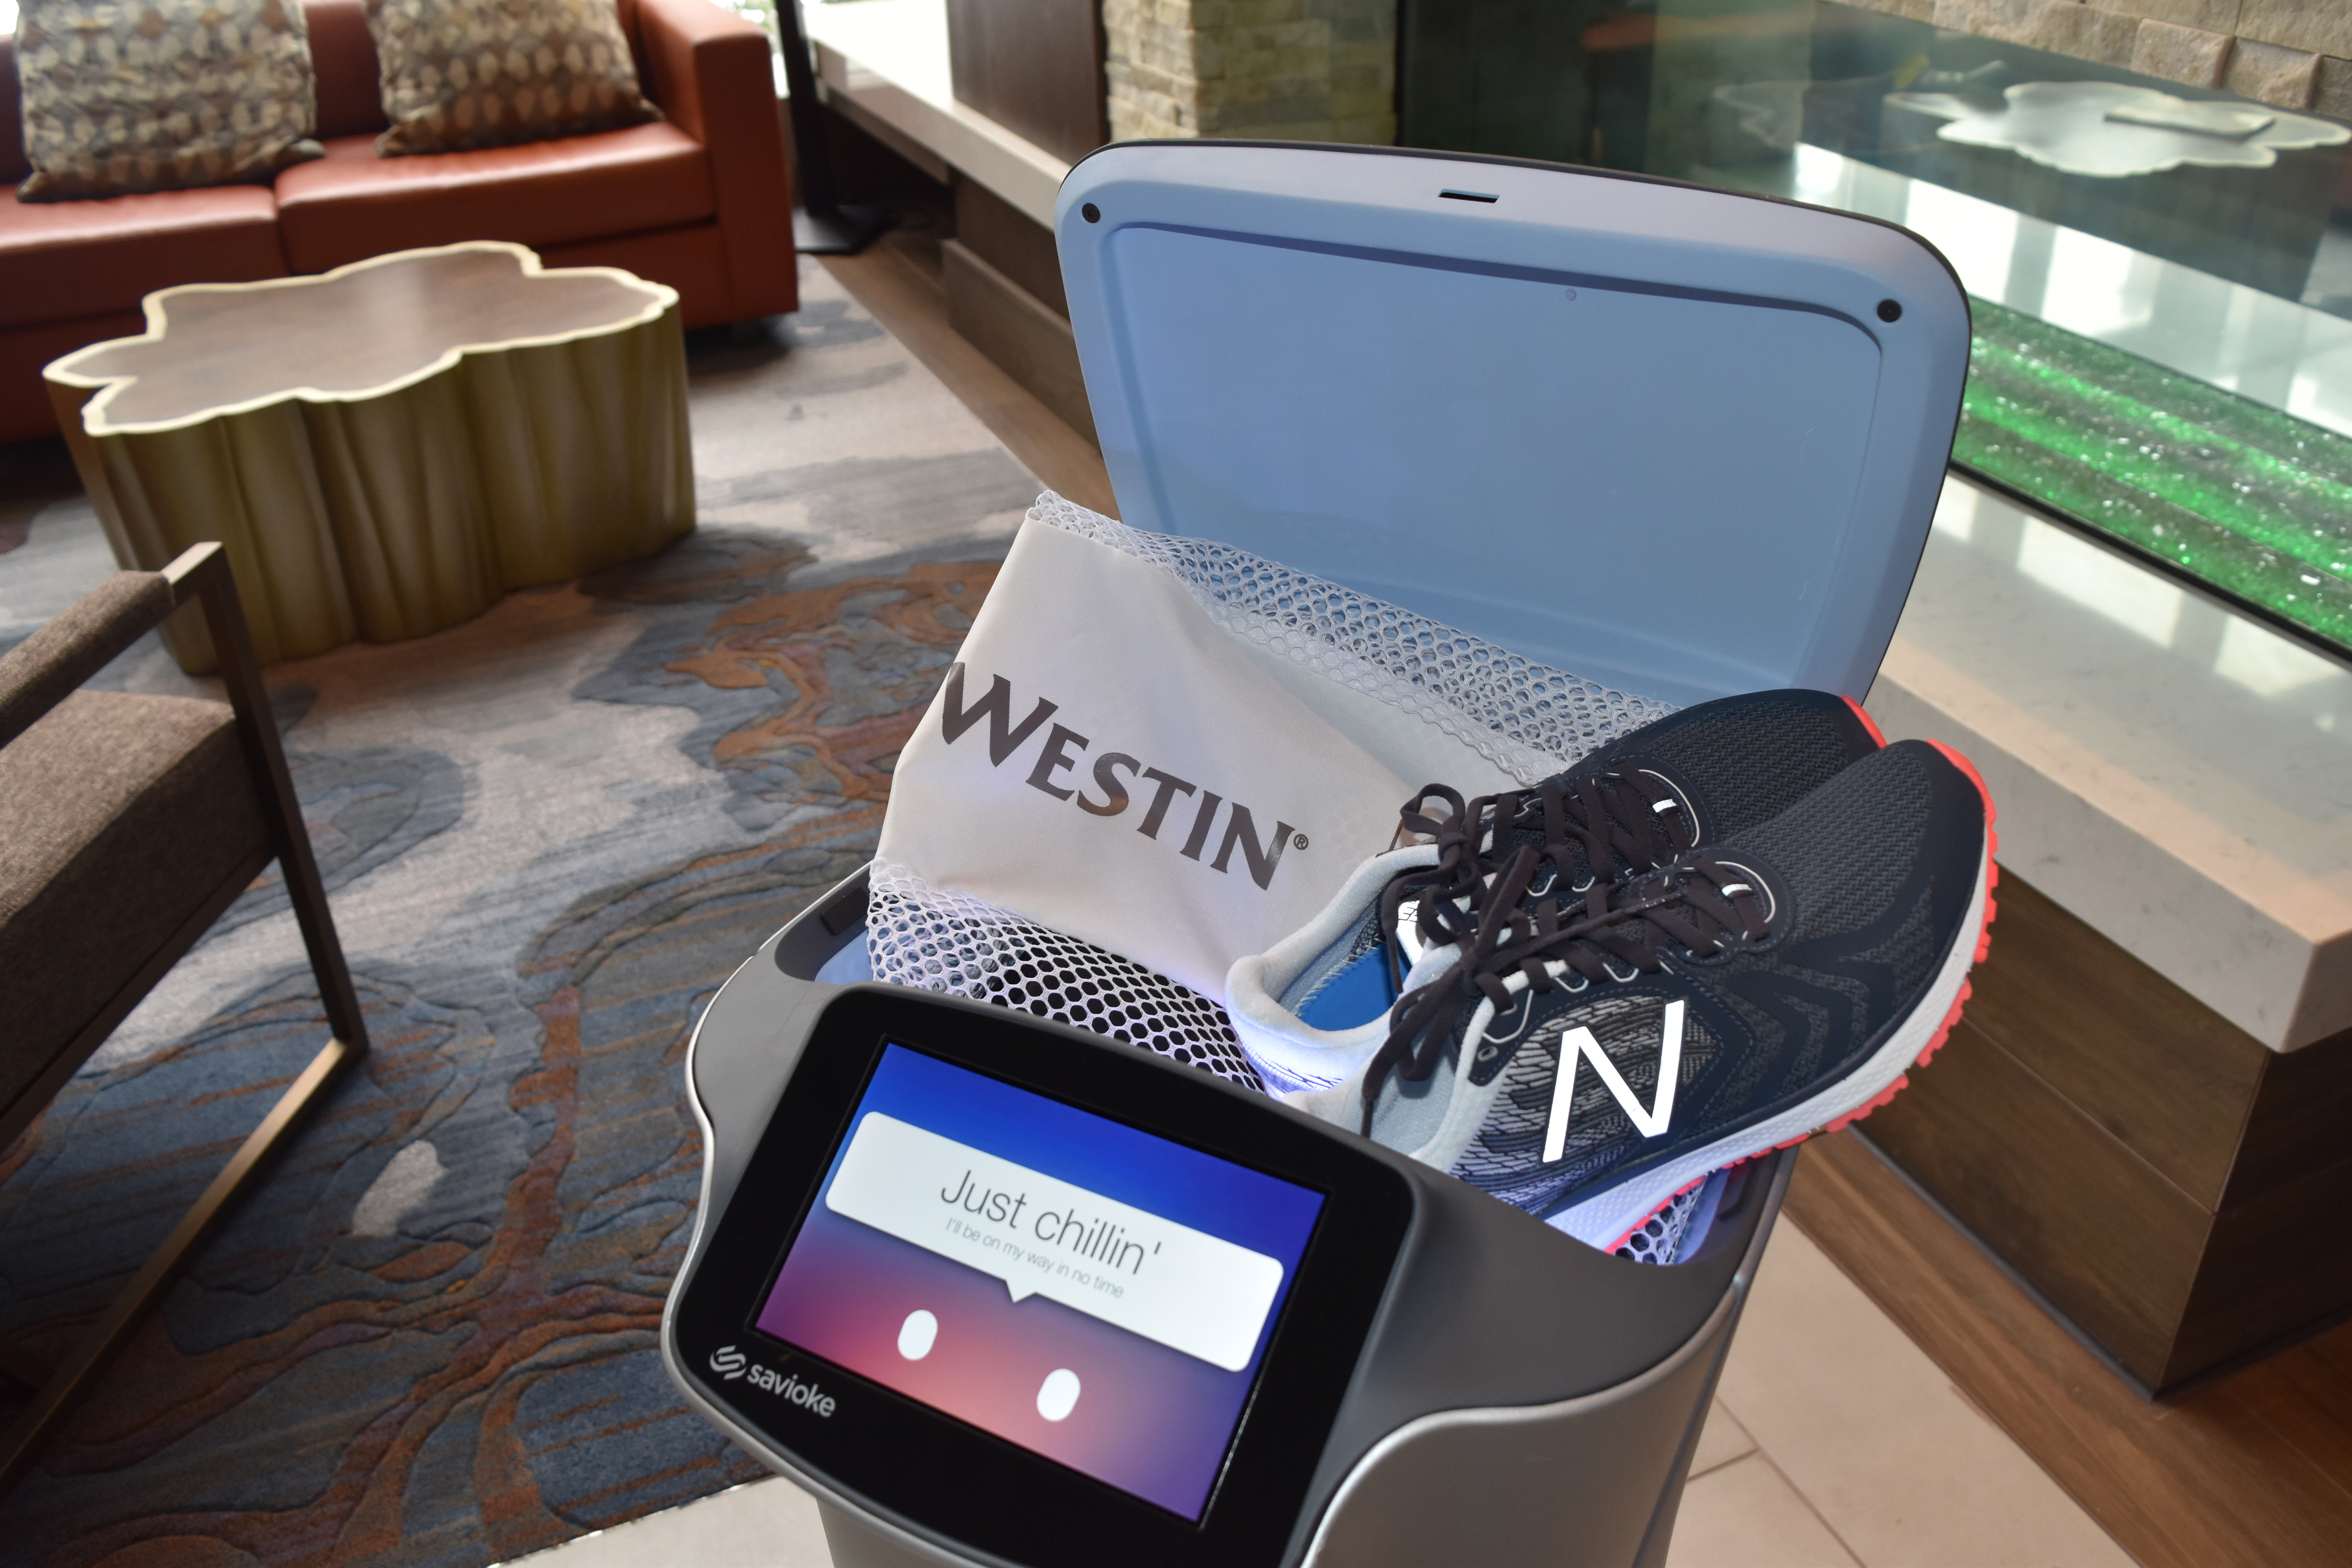 Cond 233 nast traveler 2013 hot list of top new hotels worldwide - Delaware North Introduces The First Robot Butler In New York State At The Westin Buffalo